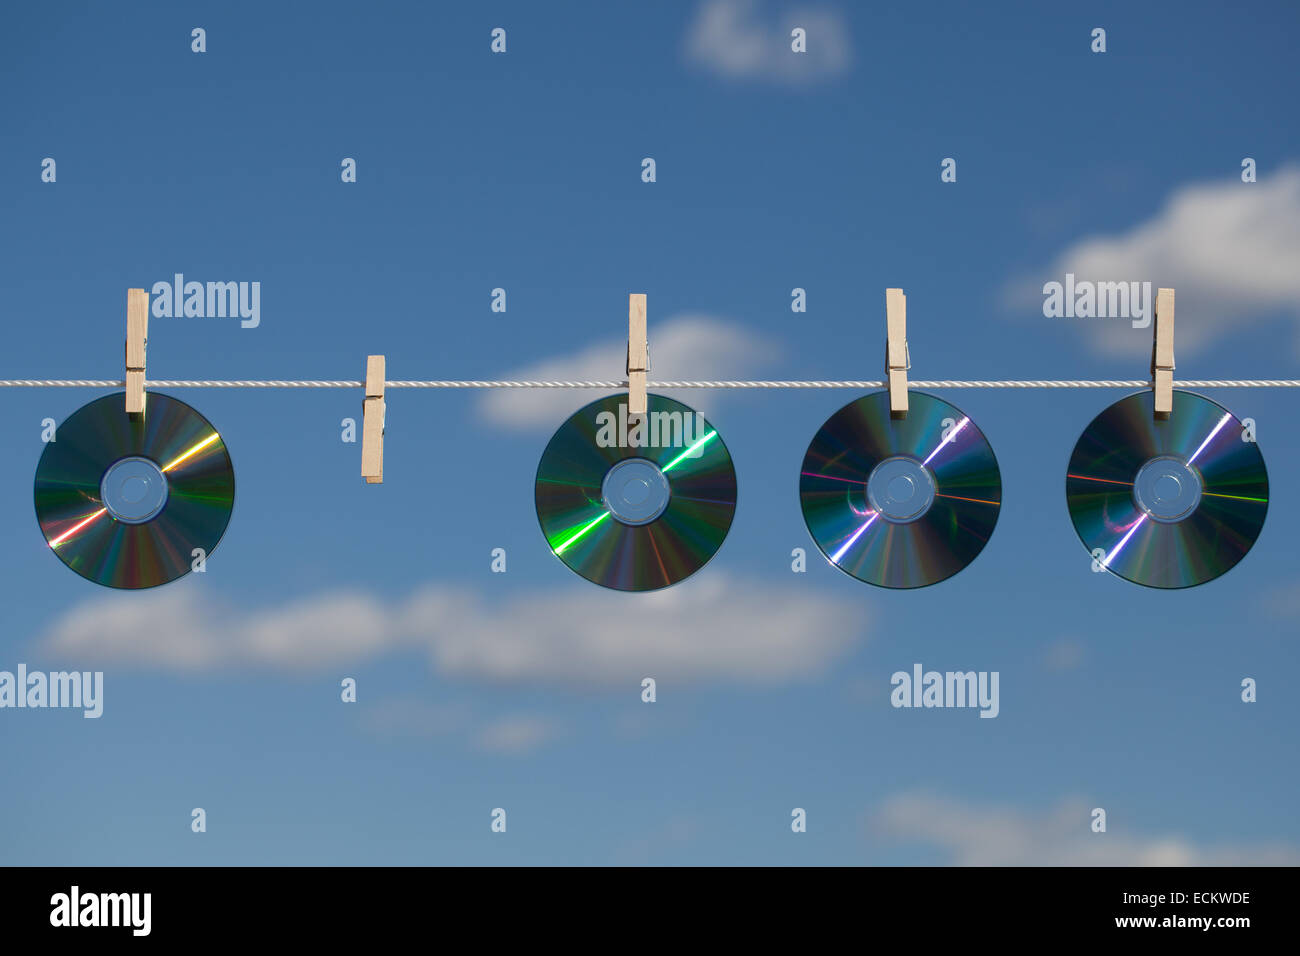 A missing CD in the row on a clothesline, attached with clothespins. - Stock Image